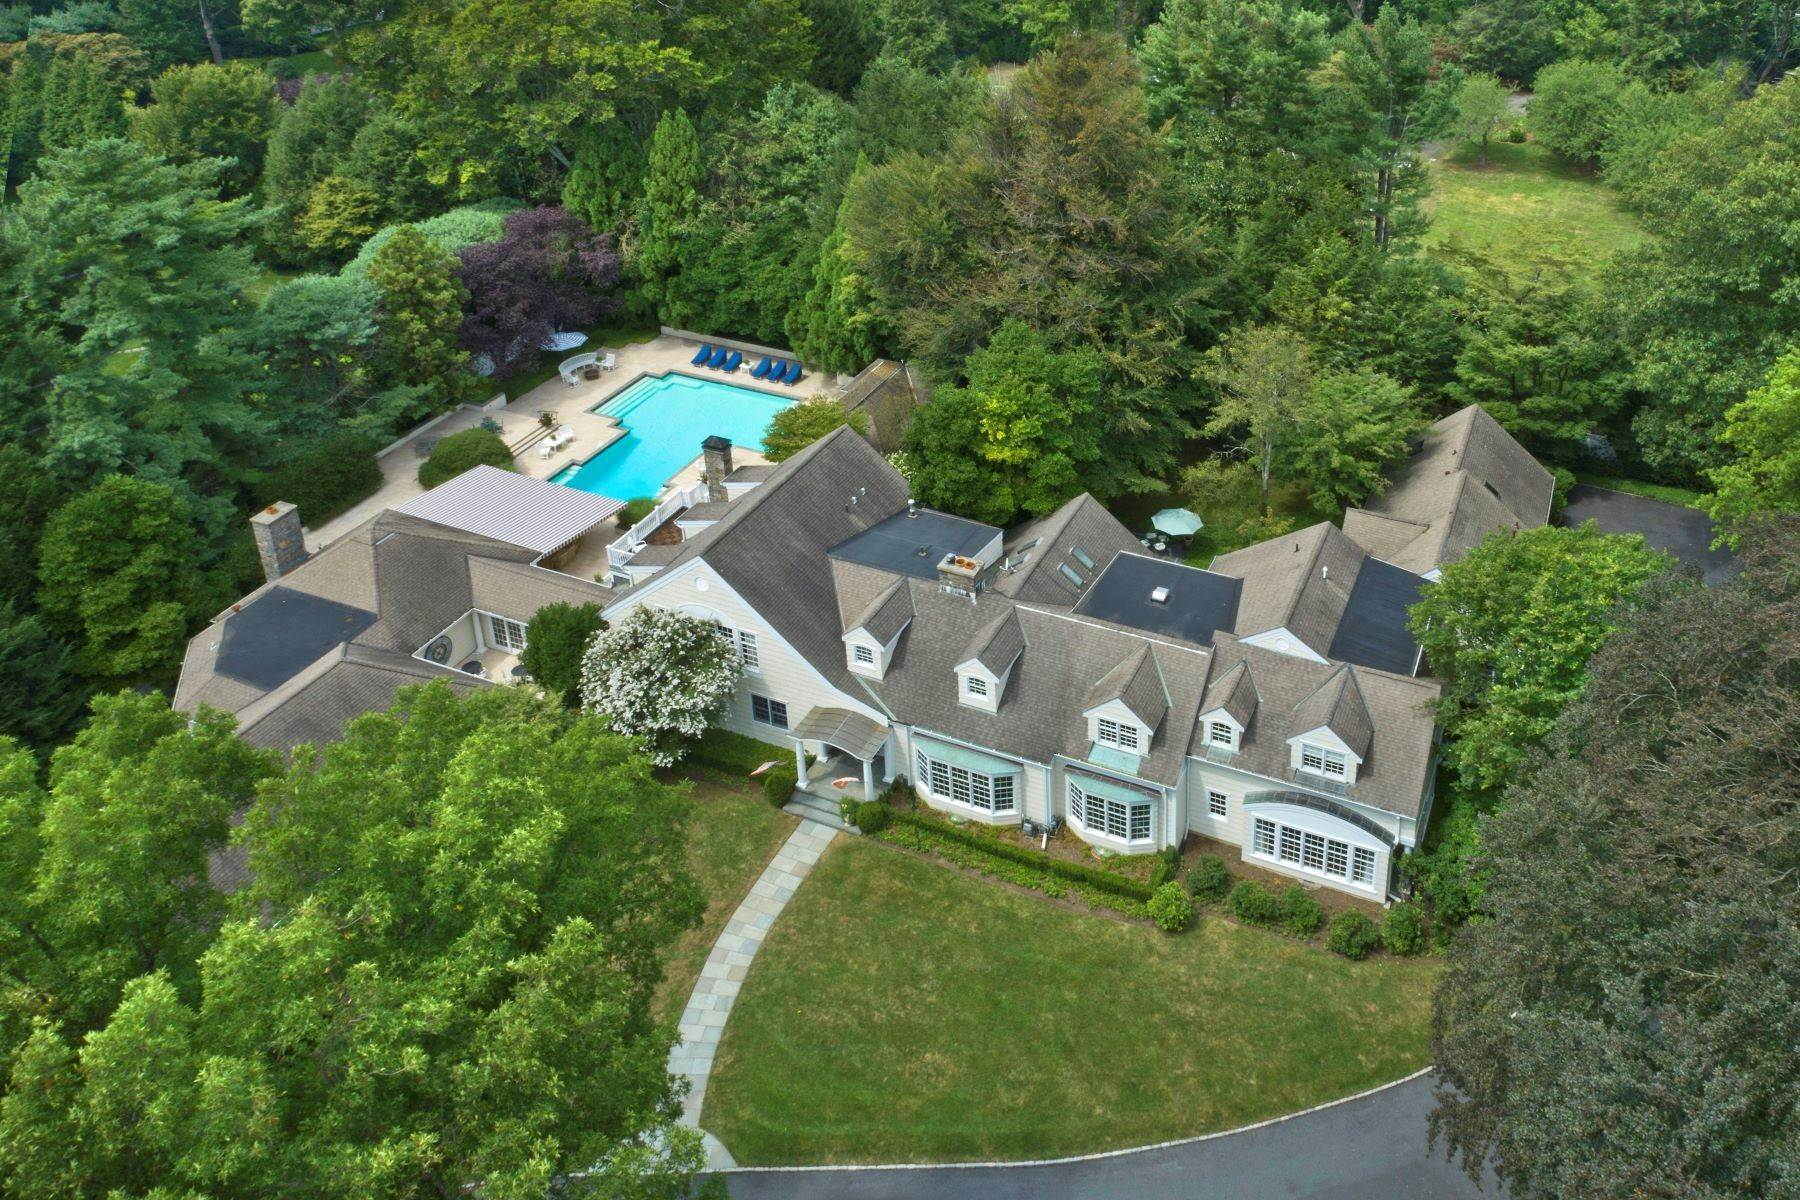 Single Family Homes のために 売買 アット Stunning Country Compound Near Town 1 Winding Lane Greenwich, コネチカット 06831 アメリカ